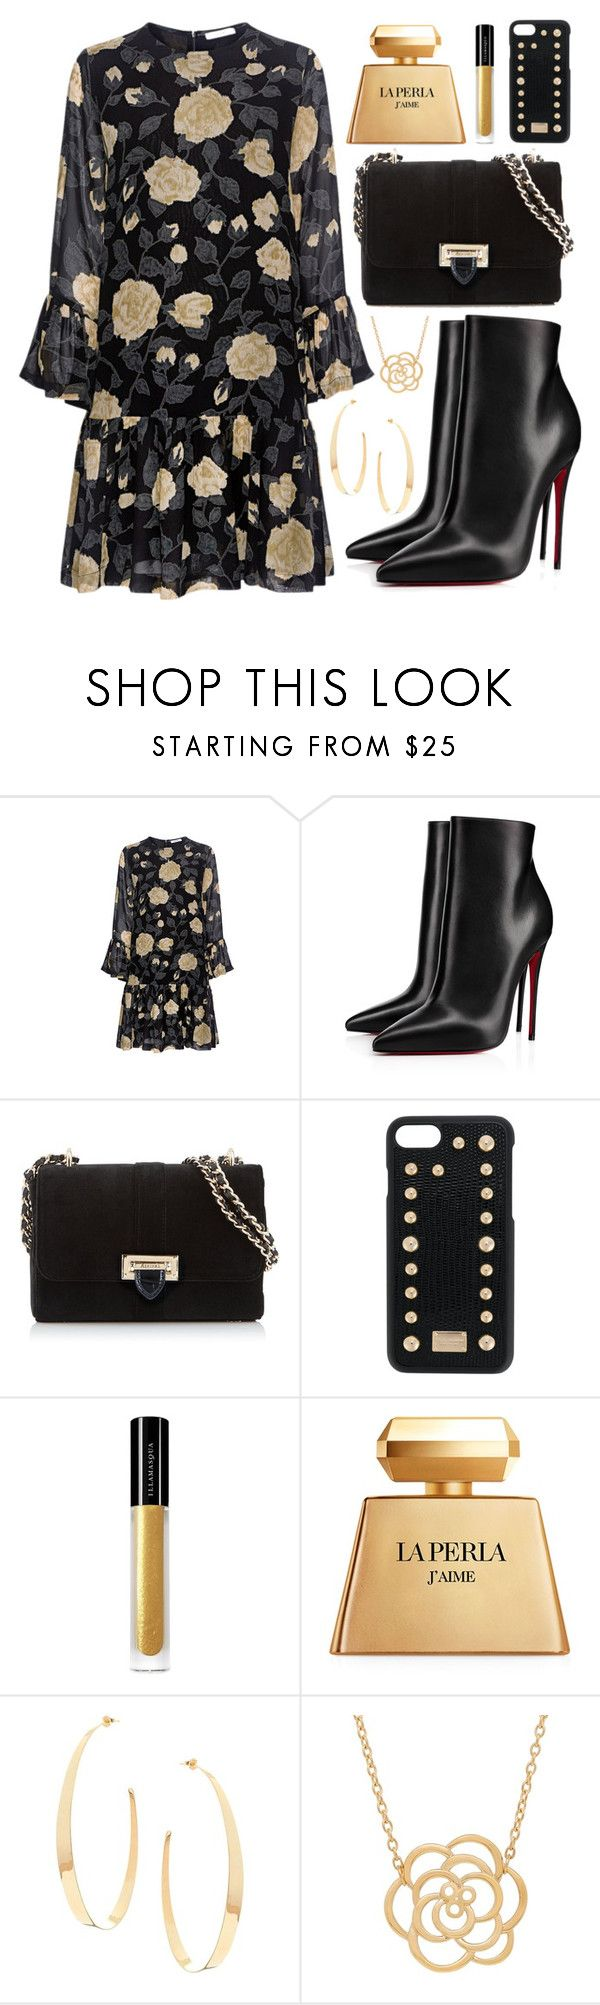 """""""Vintage Florals """" by iris913 ❤ liked on Polyvore featuring Ganni, Christian Louboutin, Aspinal of London, Dolce&Gabbana, Illamasqua, La Perla, Lana, Lord & Taylor, vintage and vintageflorals"""